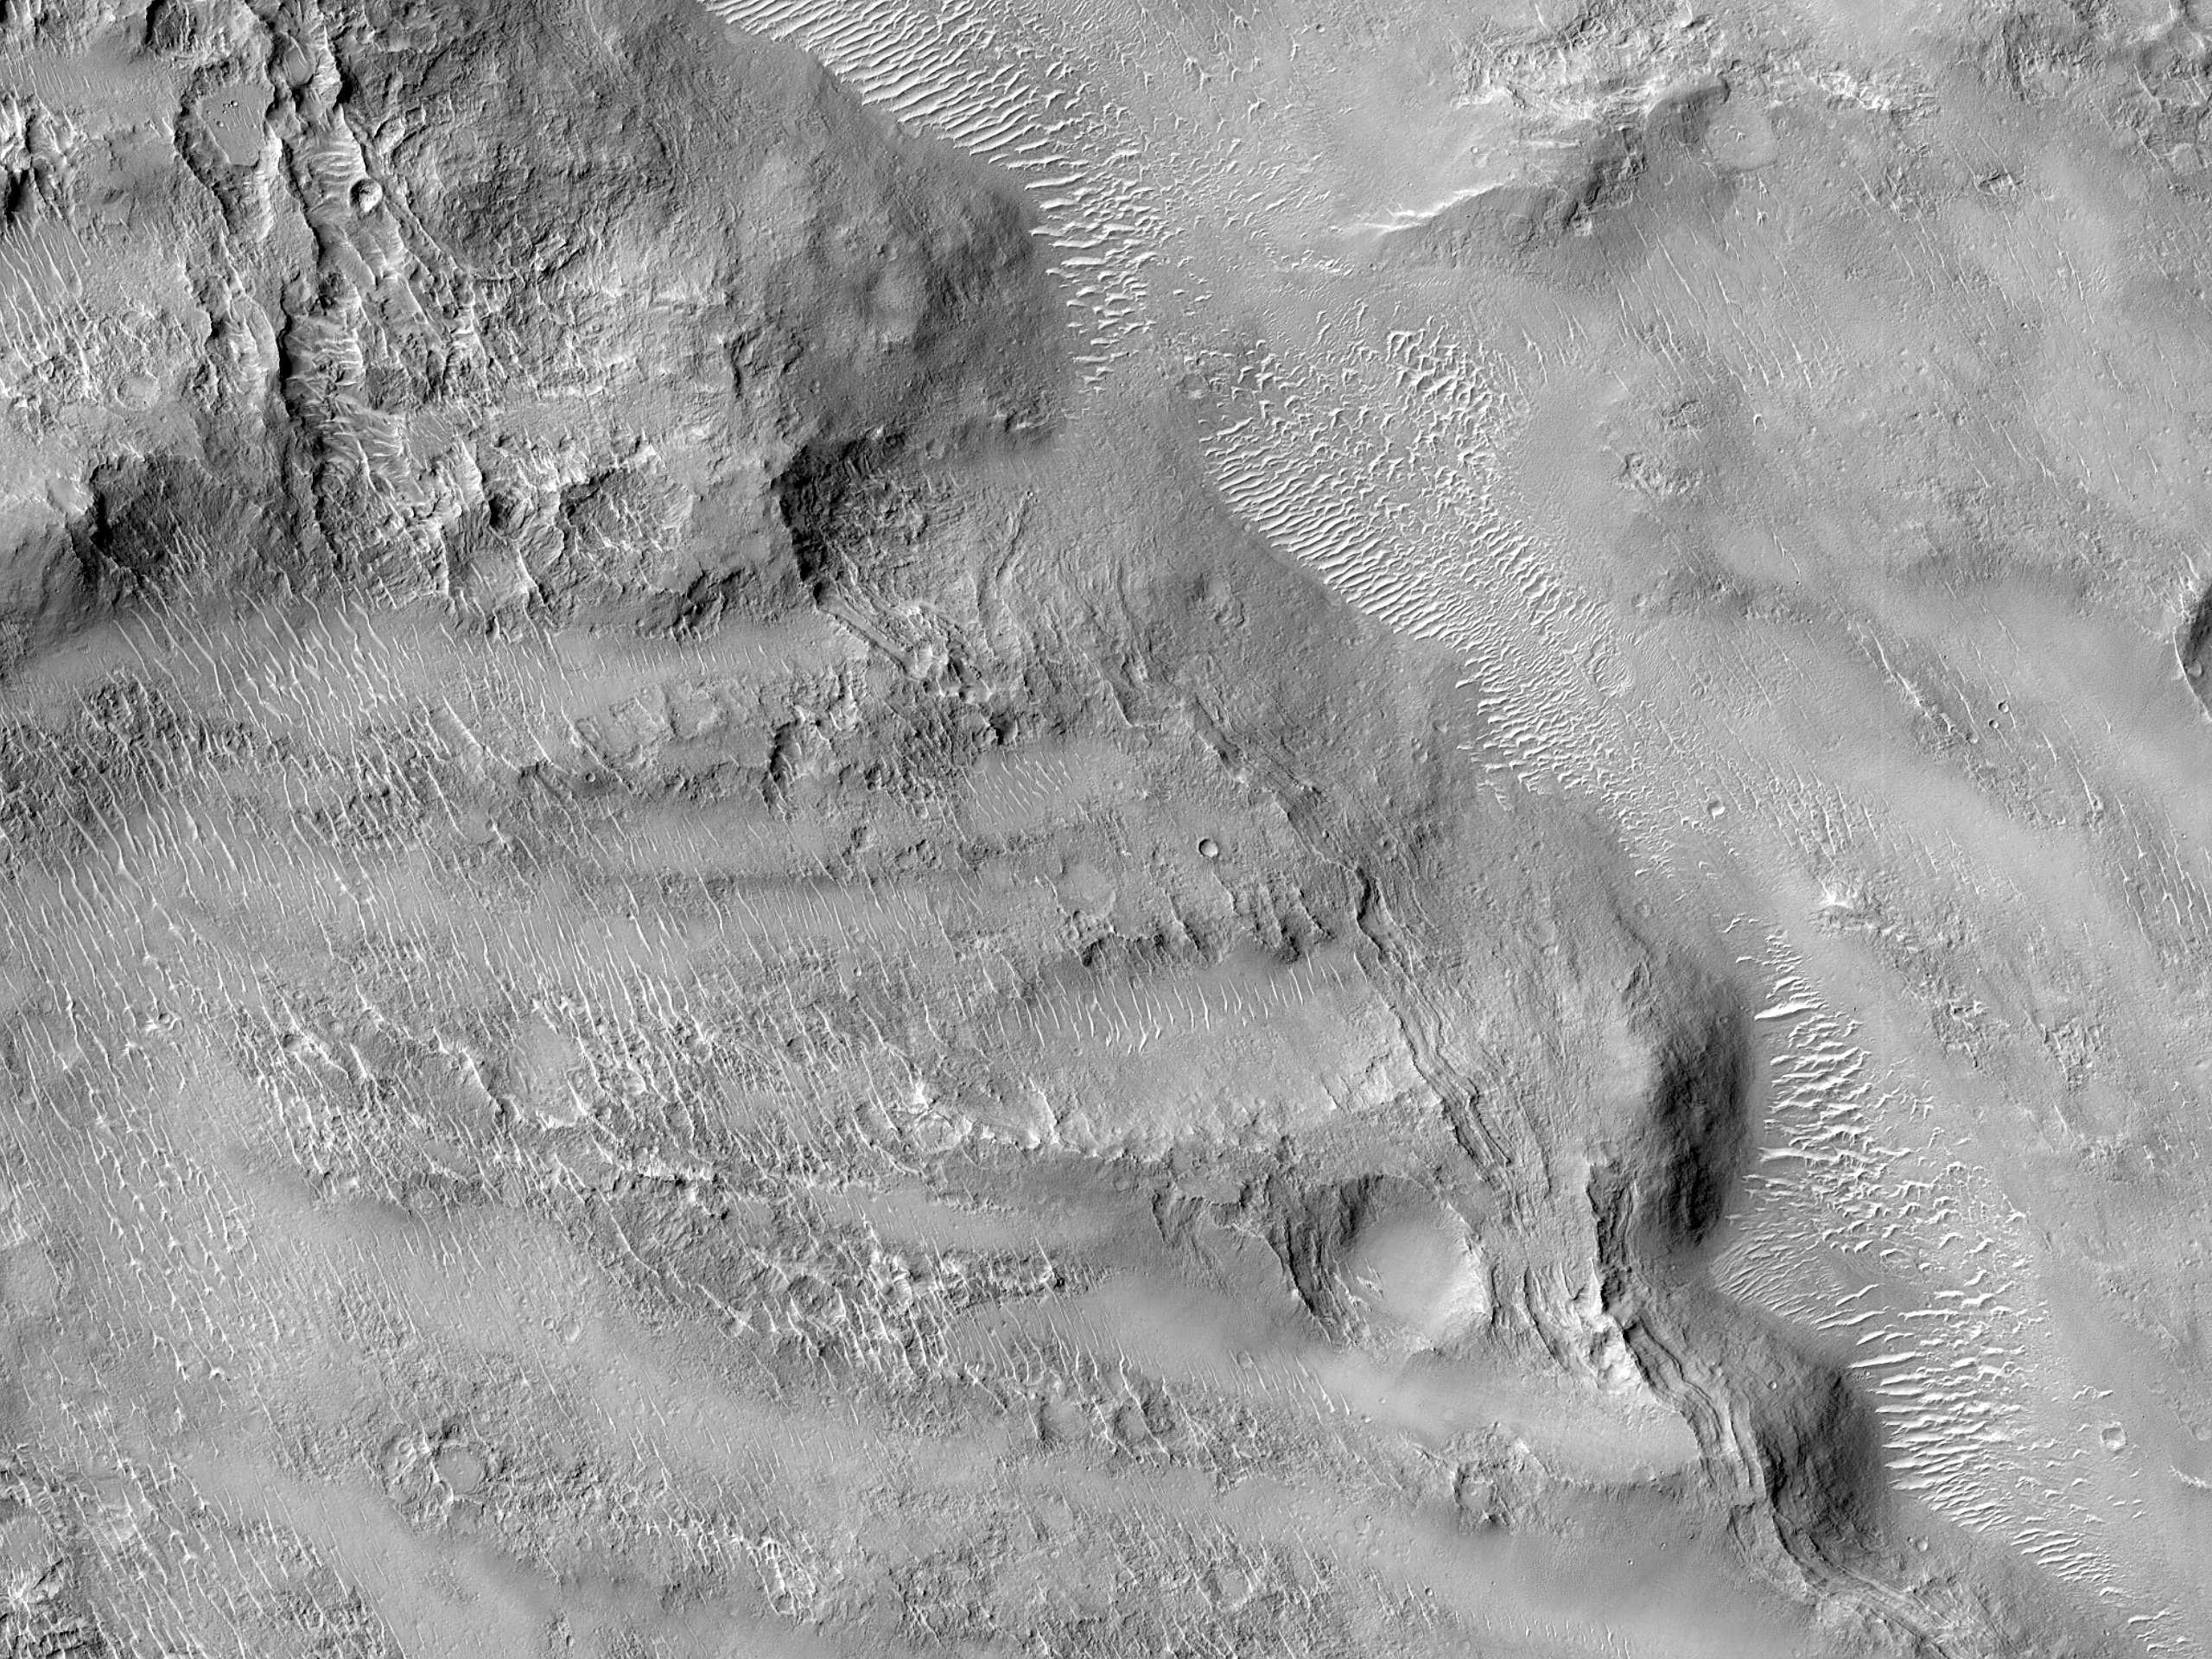 The Edge of a Complex Crater